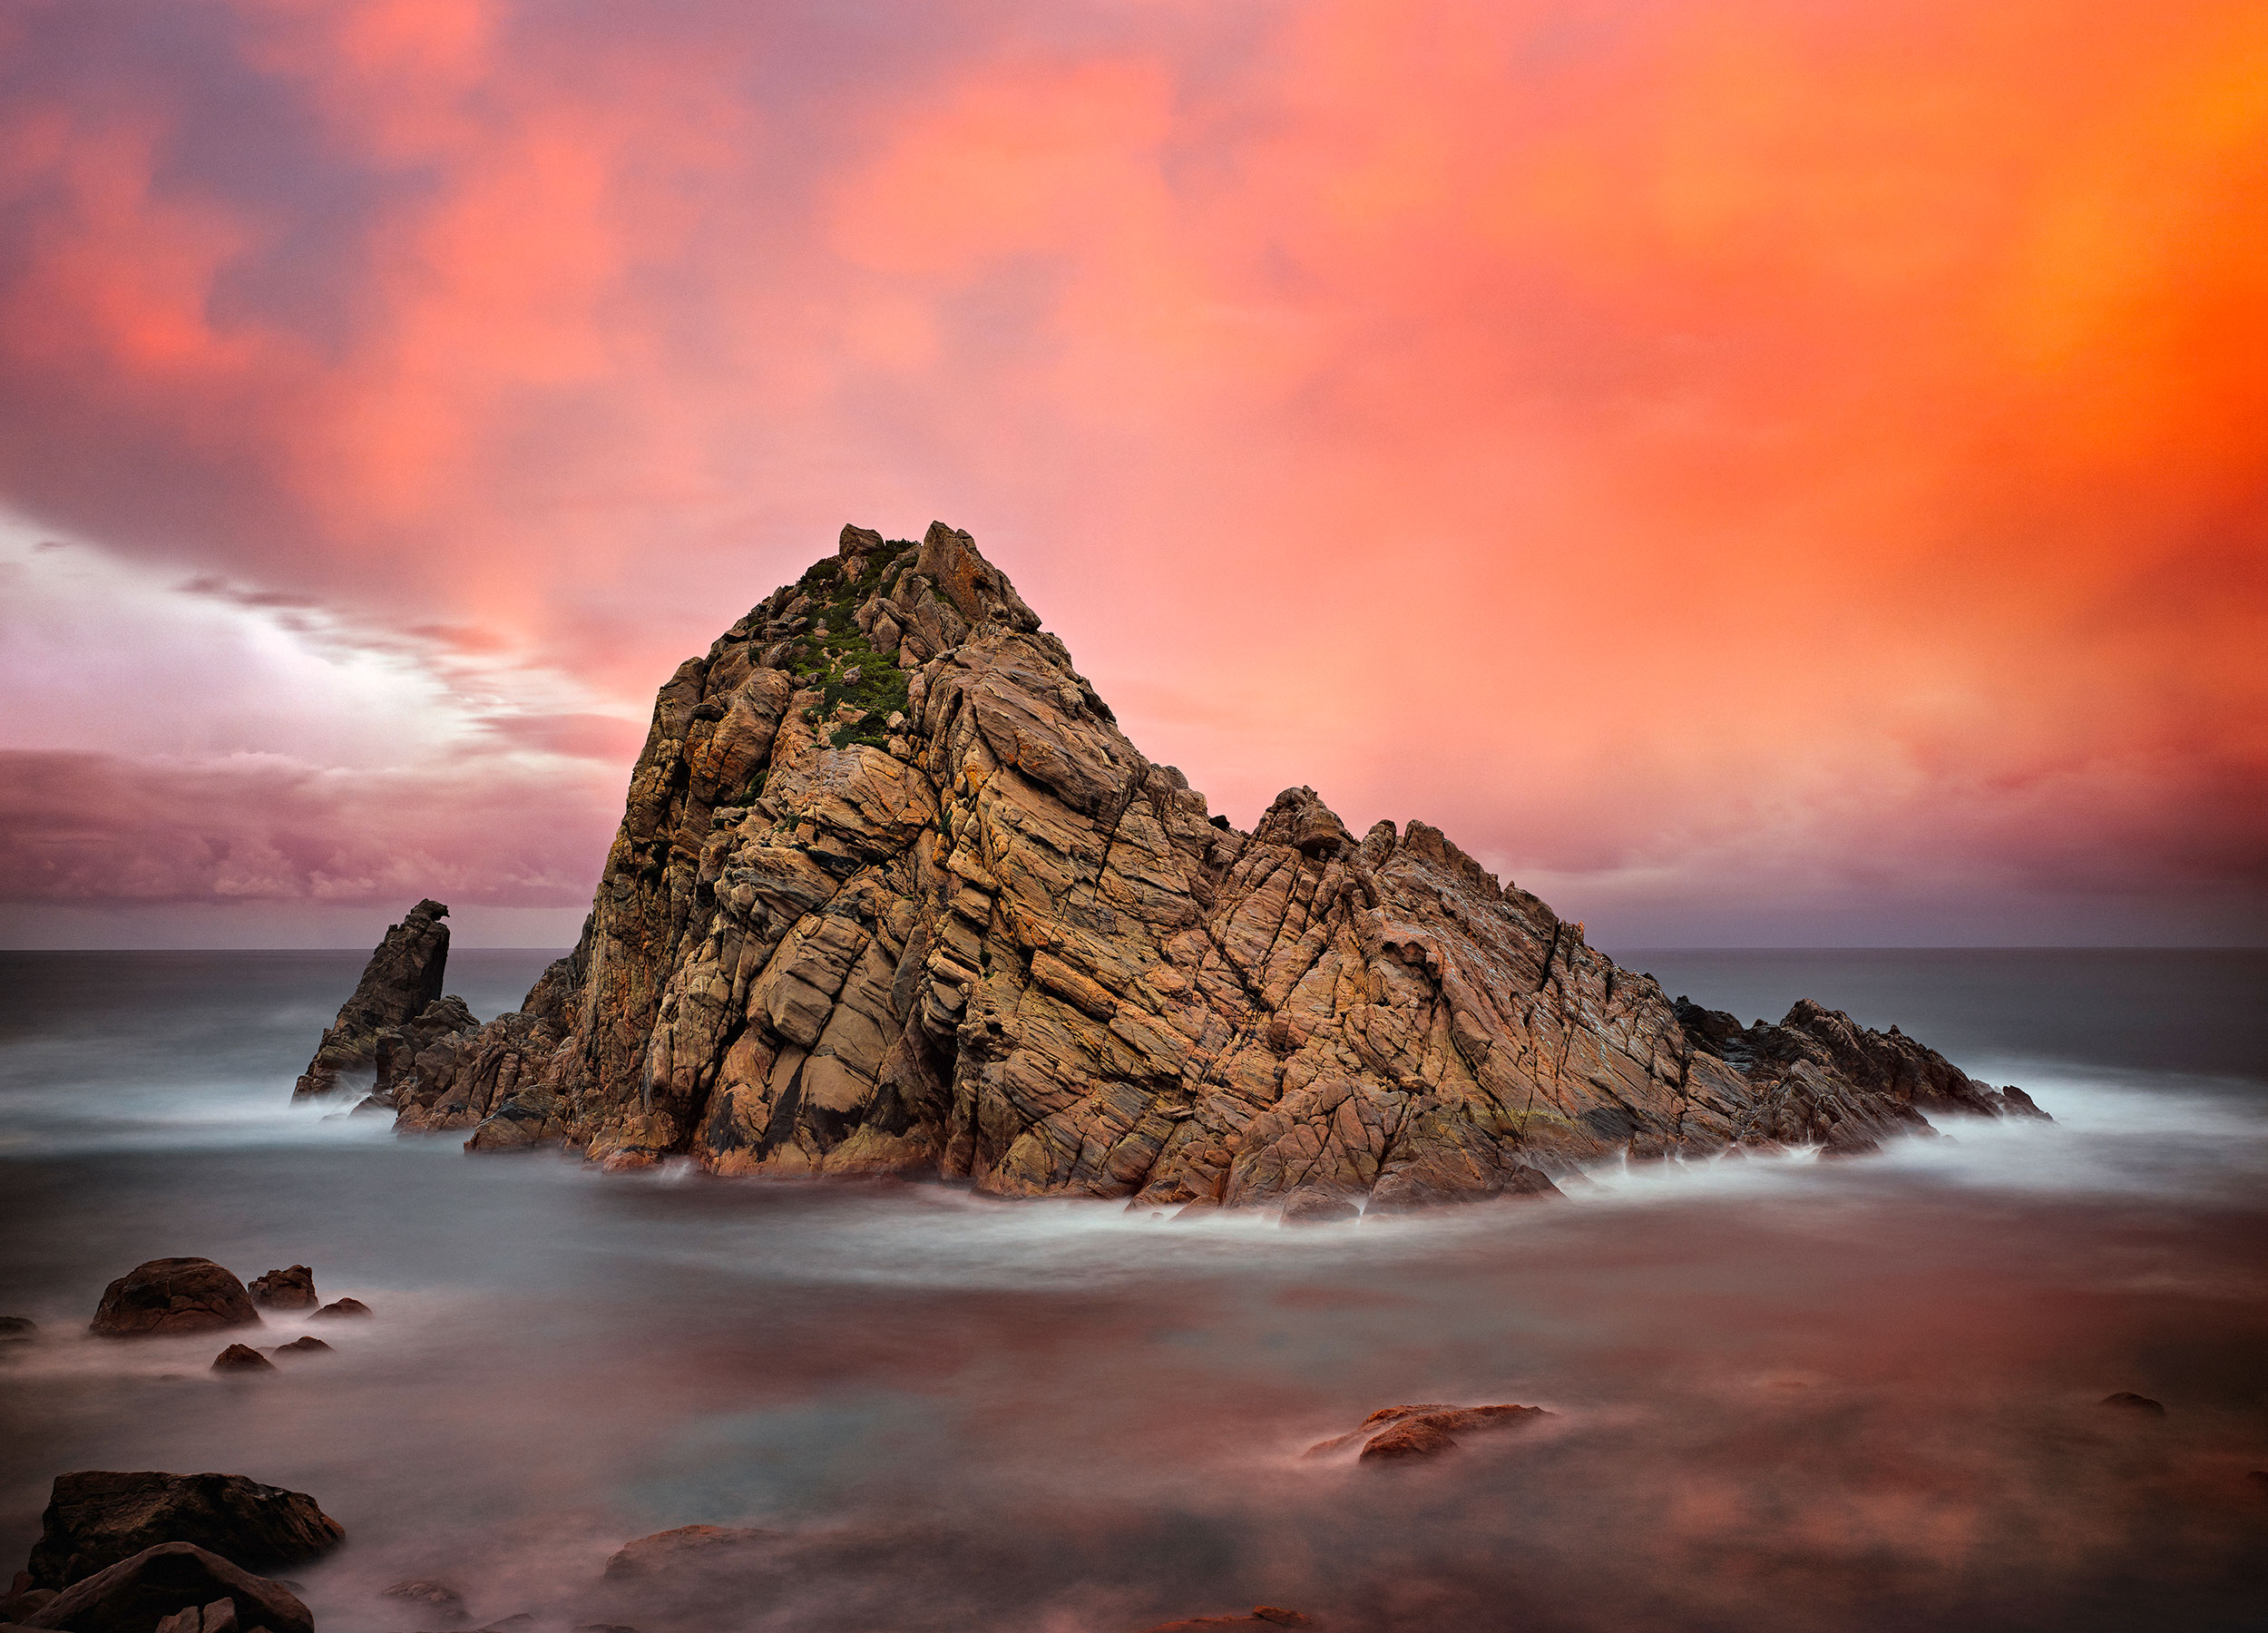 Sugarloaf Rock in the sea with an orange sunset behind it